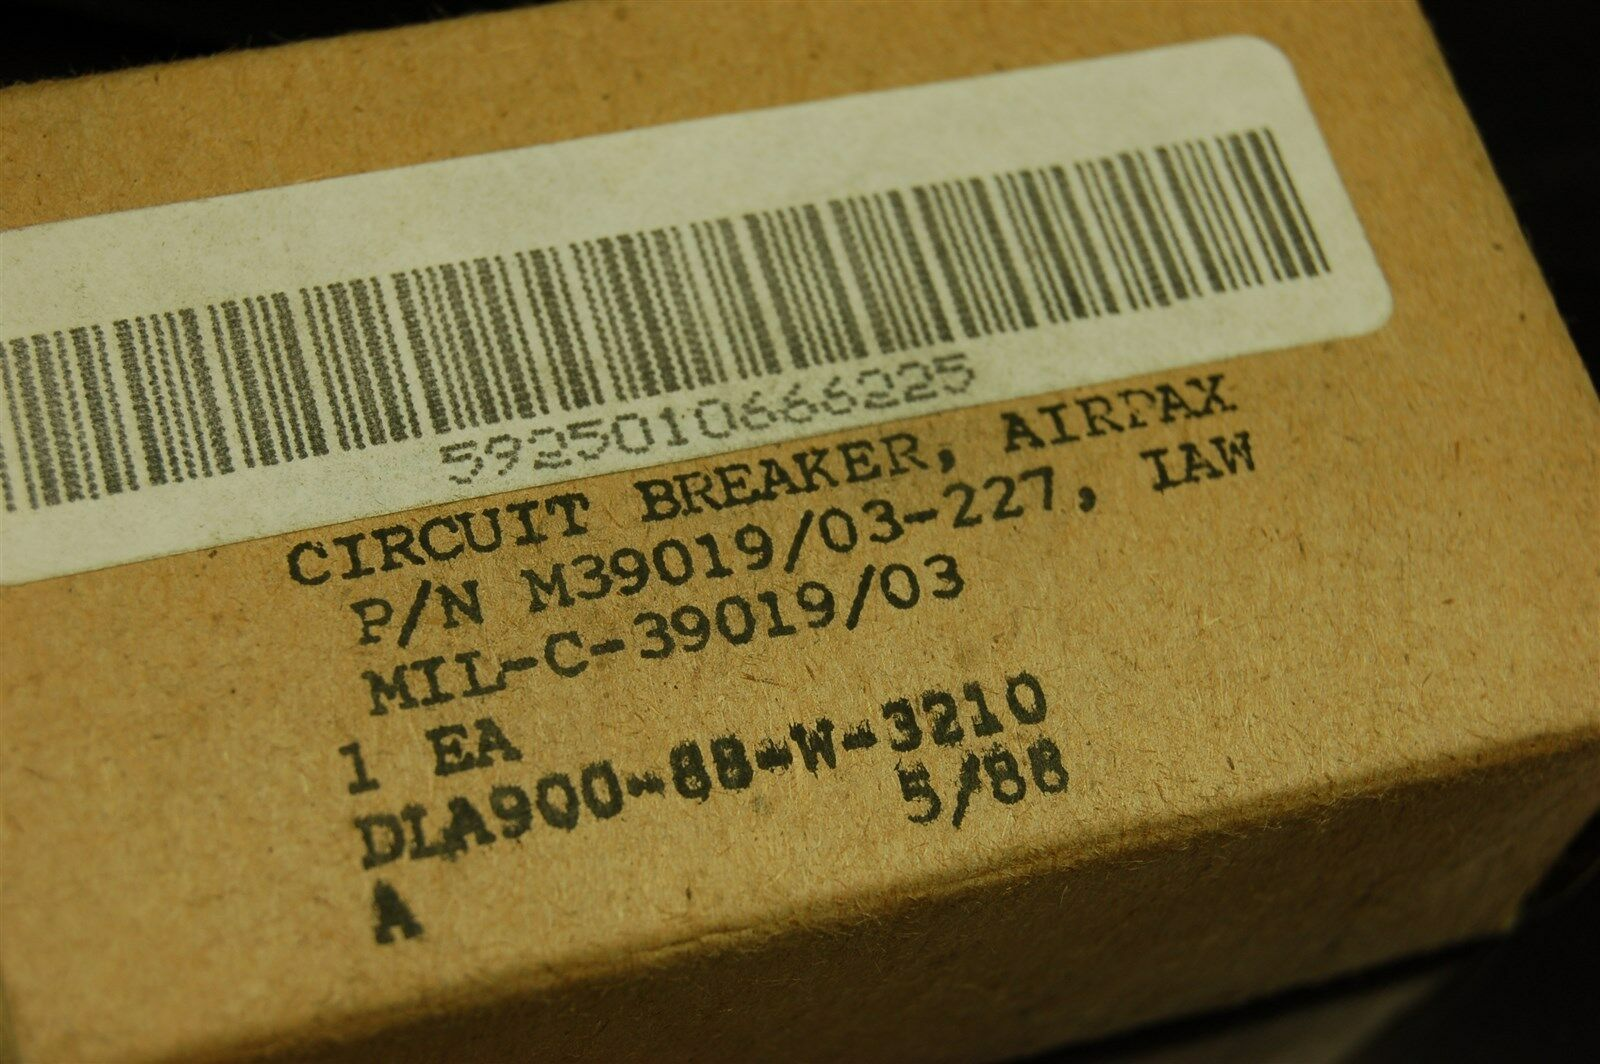 Airpax 2 Pole 240vac 50vdc 4a 09 Sec Time Delay Circuit Breaker Timedelaycircuit M39019 03 227 Ebay